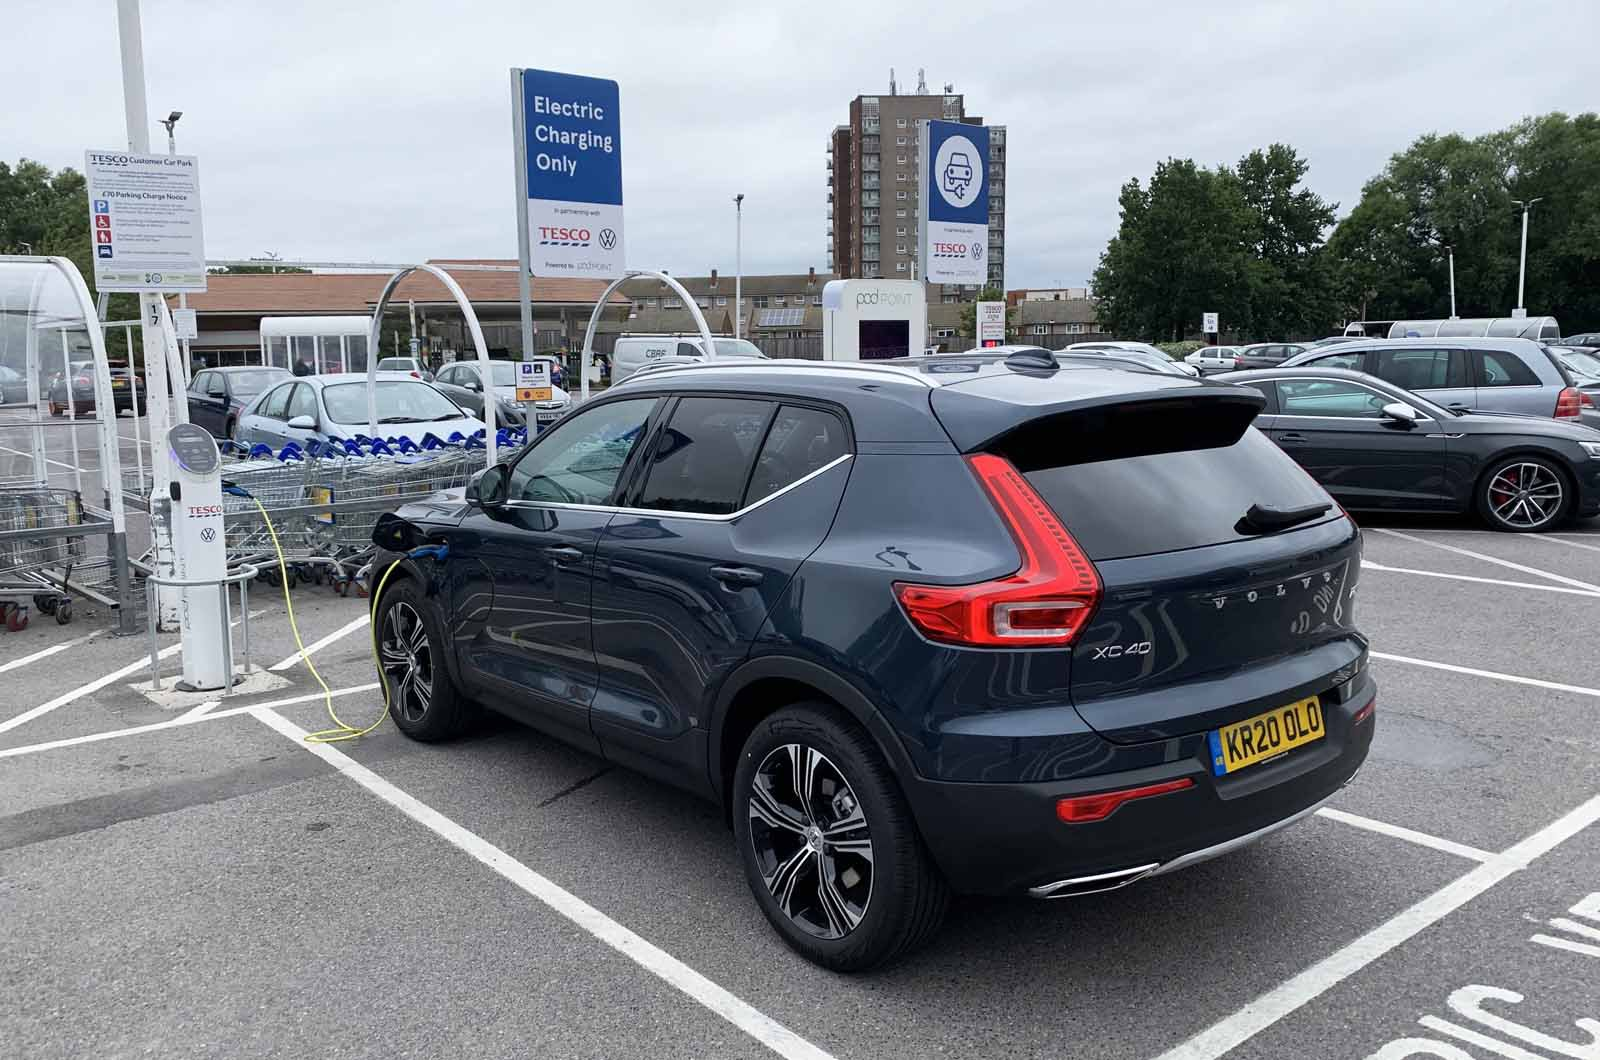 LT Volvo XC40 Recharge T5 charging at Tesco